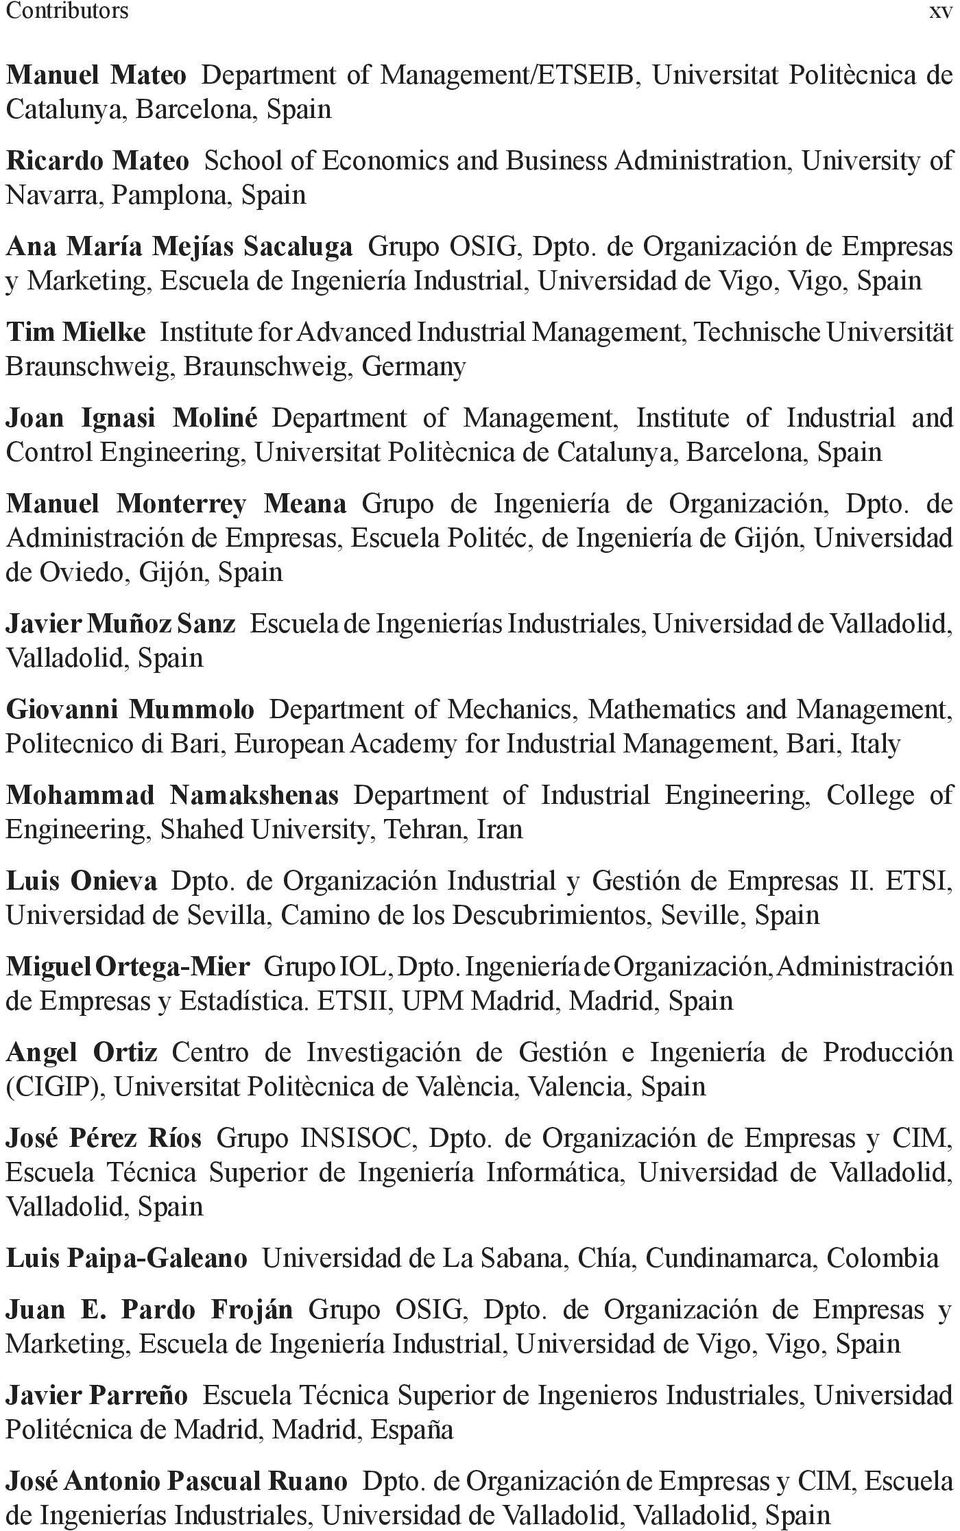 de Organización de Empresas y Marketing, Escuela de Ingeniería Industrial, Universidad de Vigo, Vigo, Tim Mielke Institute for Advanced Industrial Management, Technische Universität Braunschweig,